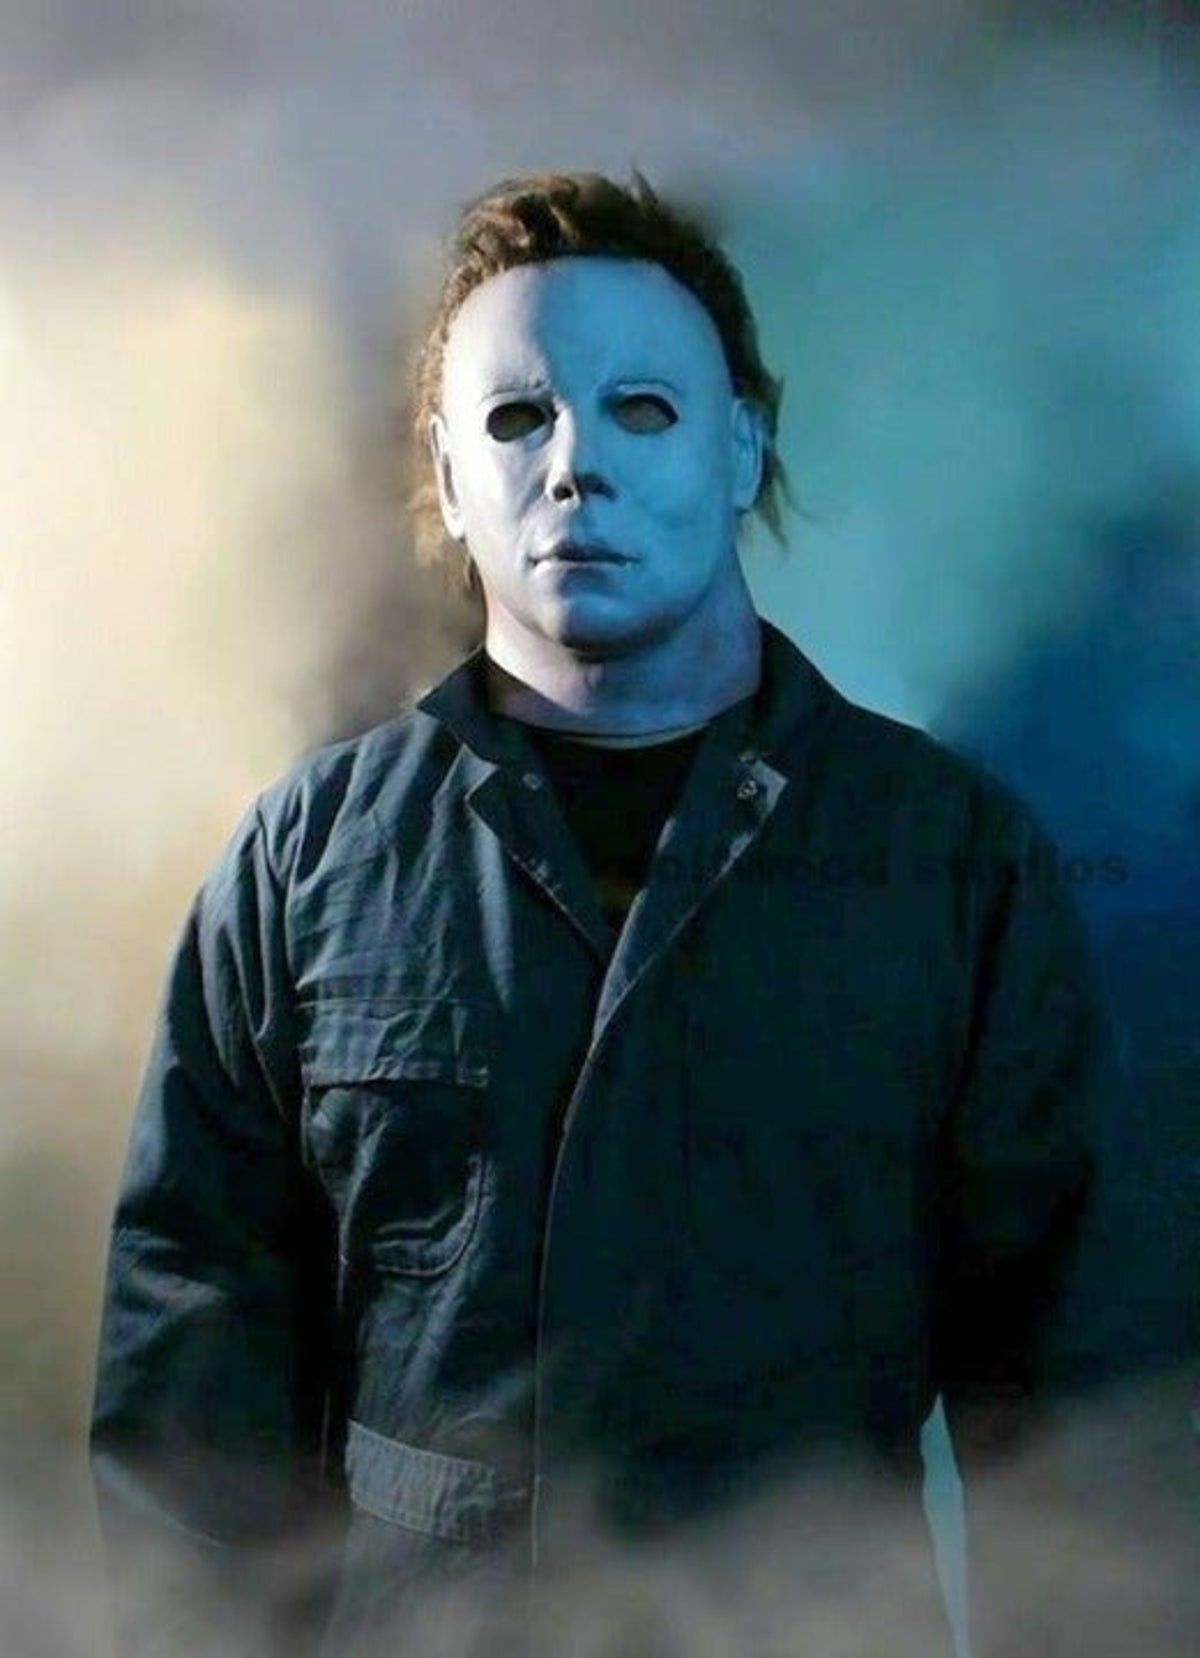 Scary Michael Myers Publicity Photo in 2020 Michael